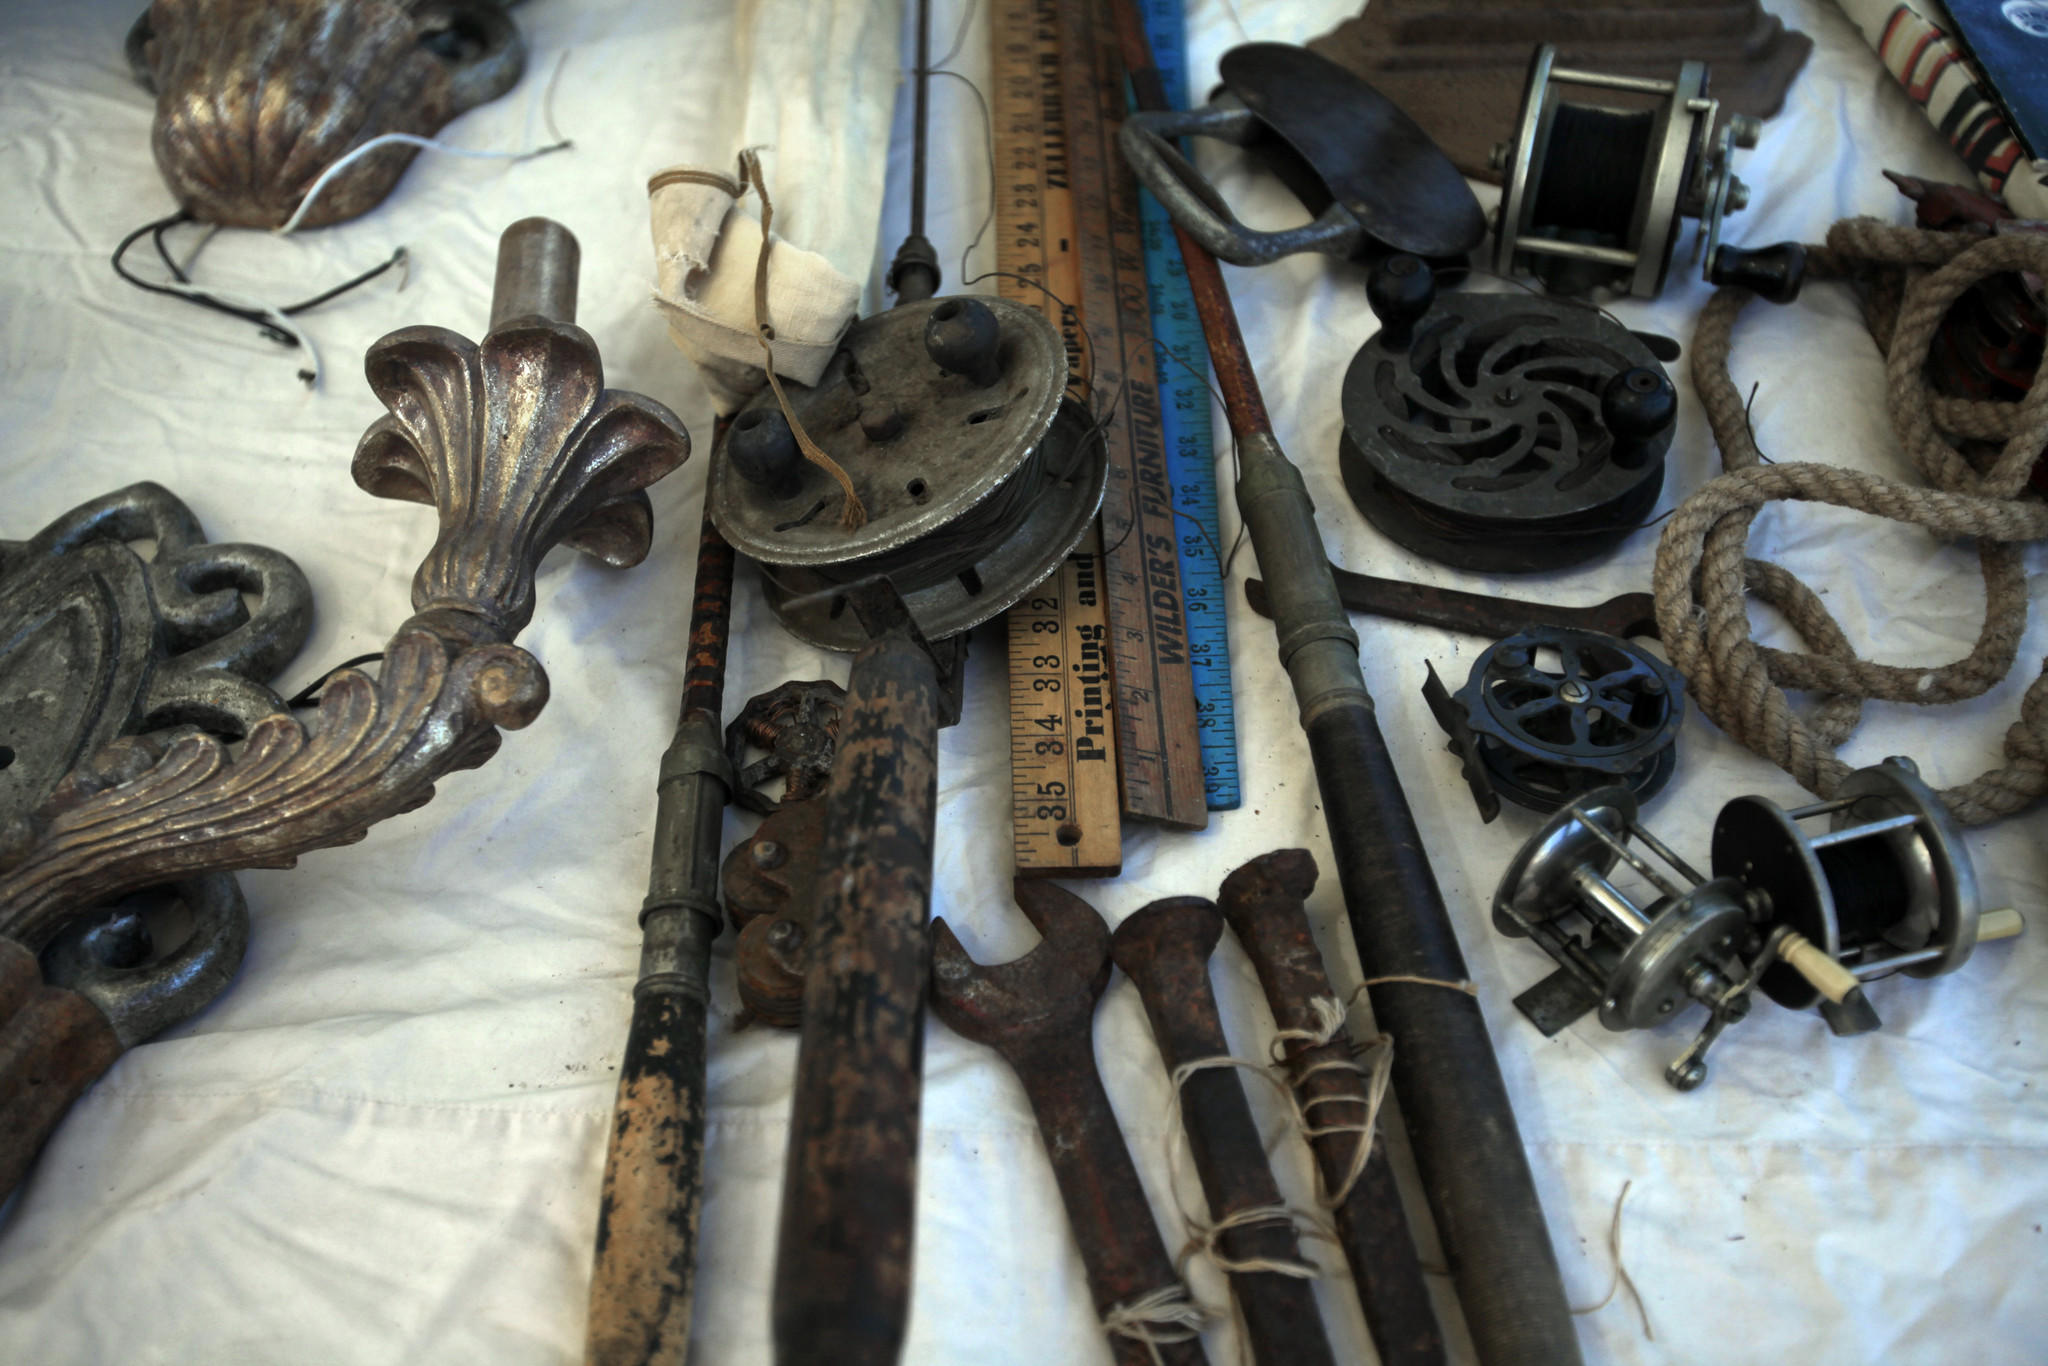 Fishing poles, reels, yardsticks. It's tough to decide what to keep and what to get rid of.